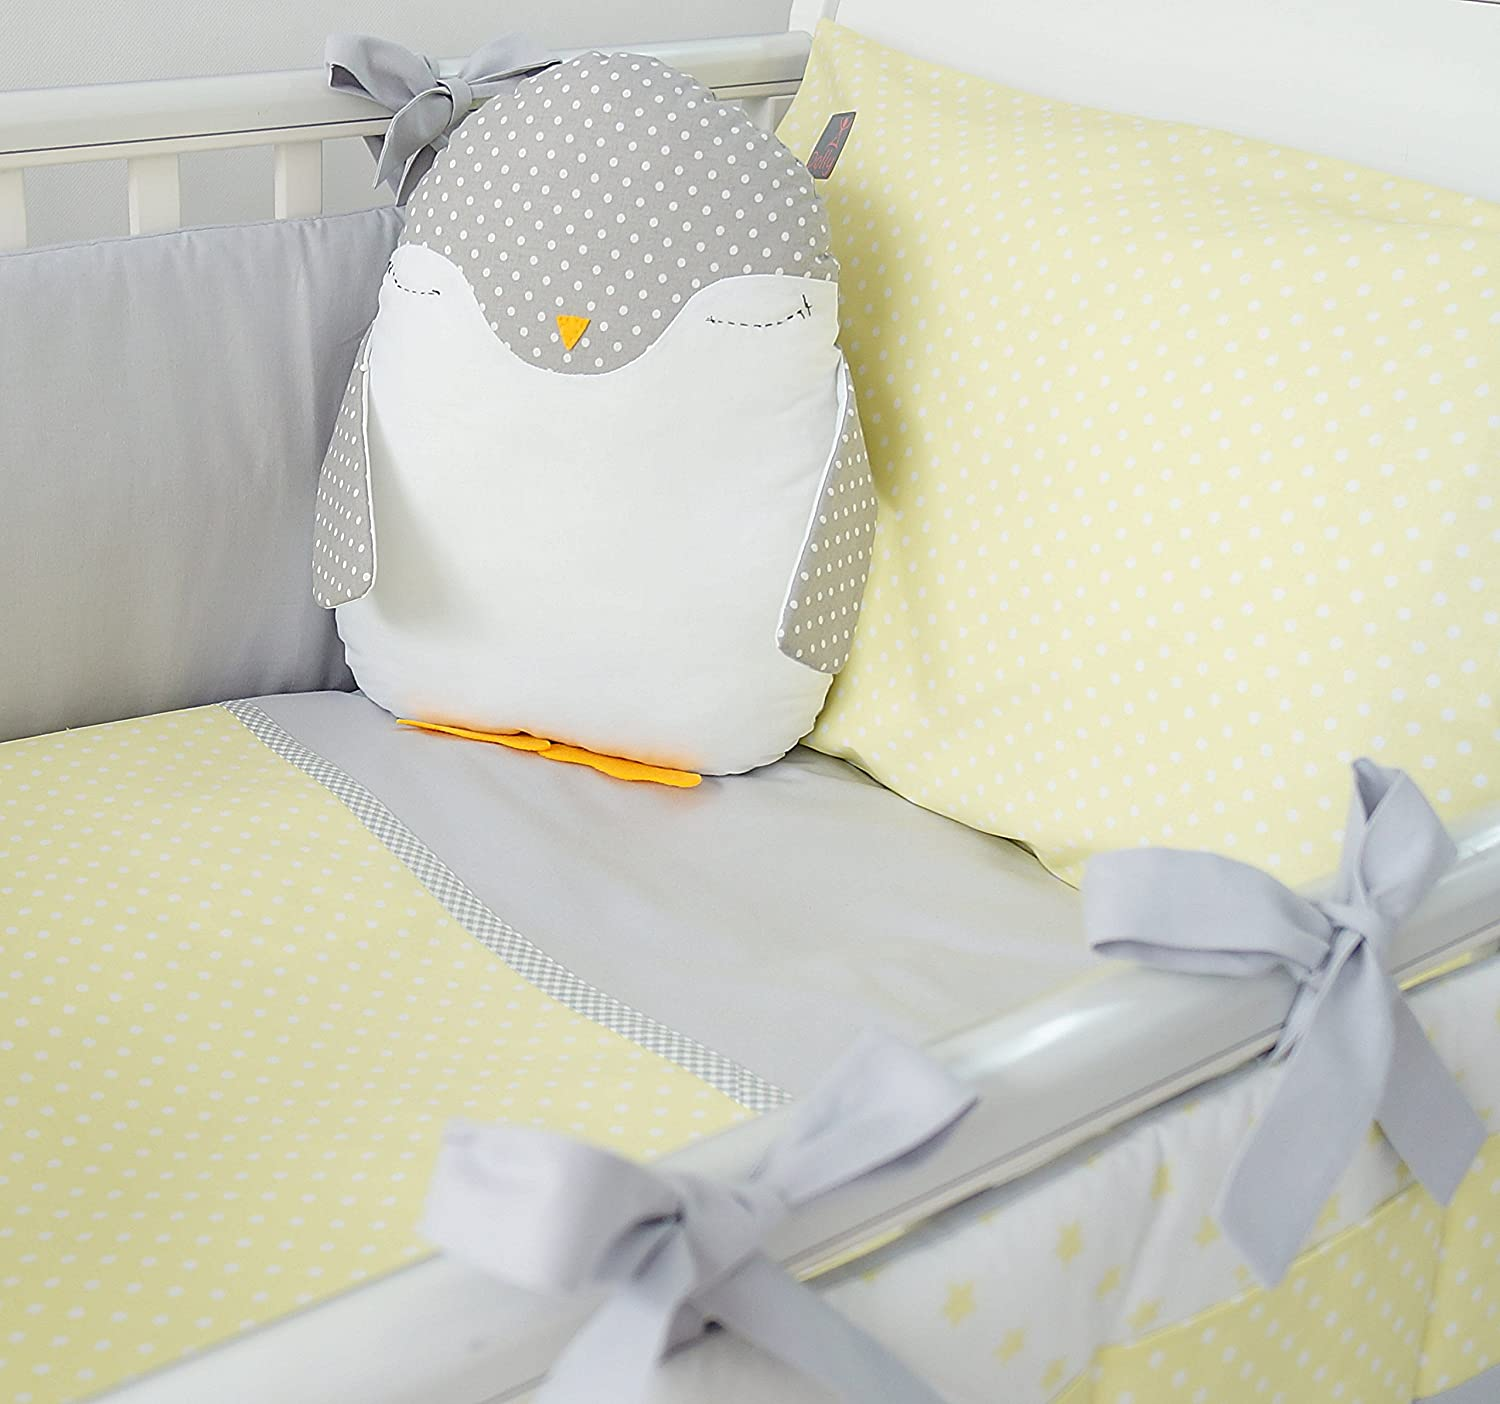 **NEW EXCLUSIVE & LUXURY BABY BEDDING SET - LEMON & WHITE POLKA DOT + GREY - DUVET, PILLOW, DUVET COVER, PILLOWCASE, BUMPER, COT TIDY + DECORATIVE CUSHION IN THE SHAPE OF PENGUIN to FIT COT OR COT BED (please see dimensions in description) DOLLY